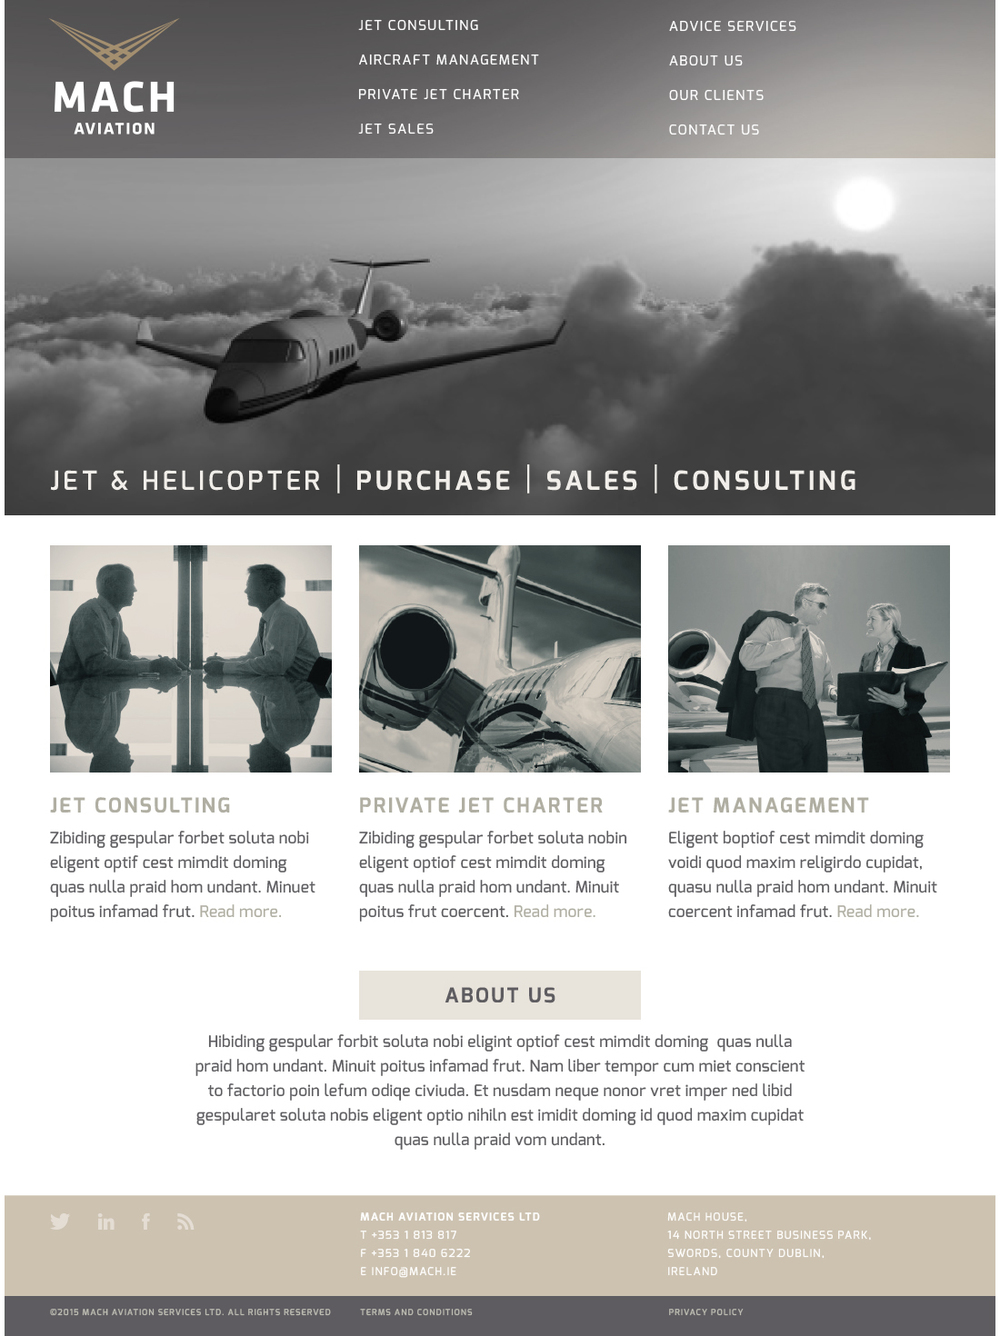 Concept design visual for Mach Aviation home page.